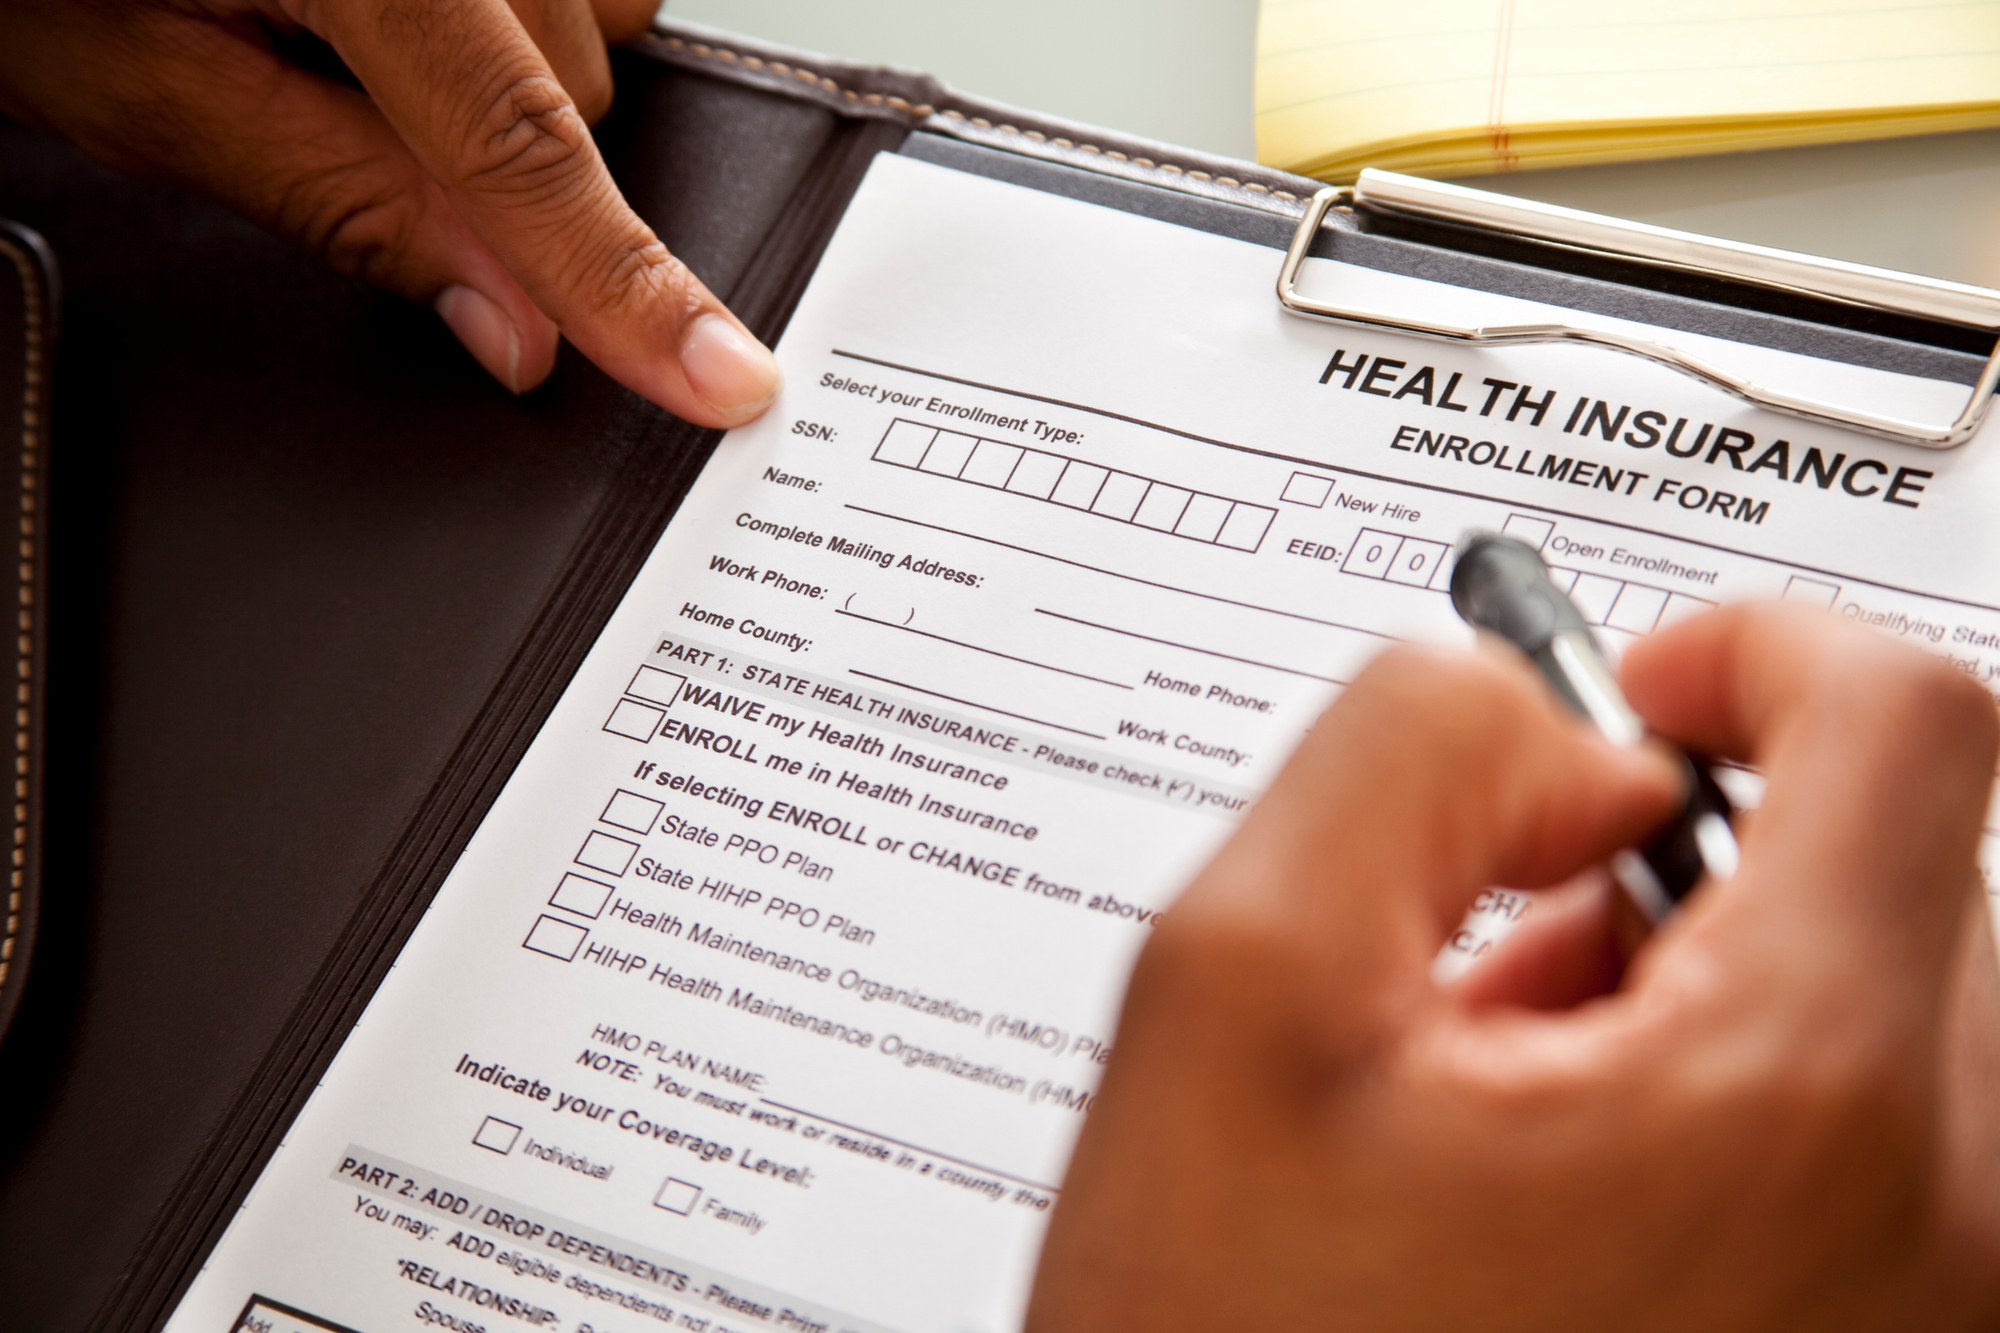 5 Affordable Health Insurance Options You Should Consider